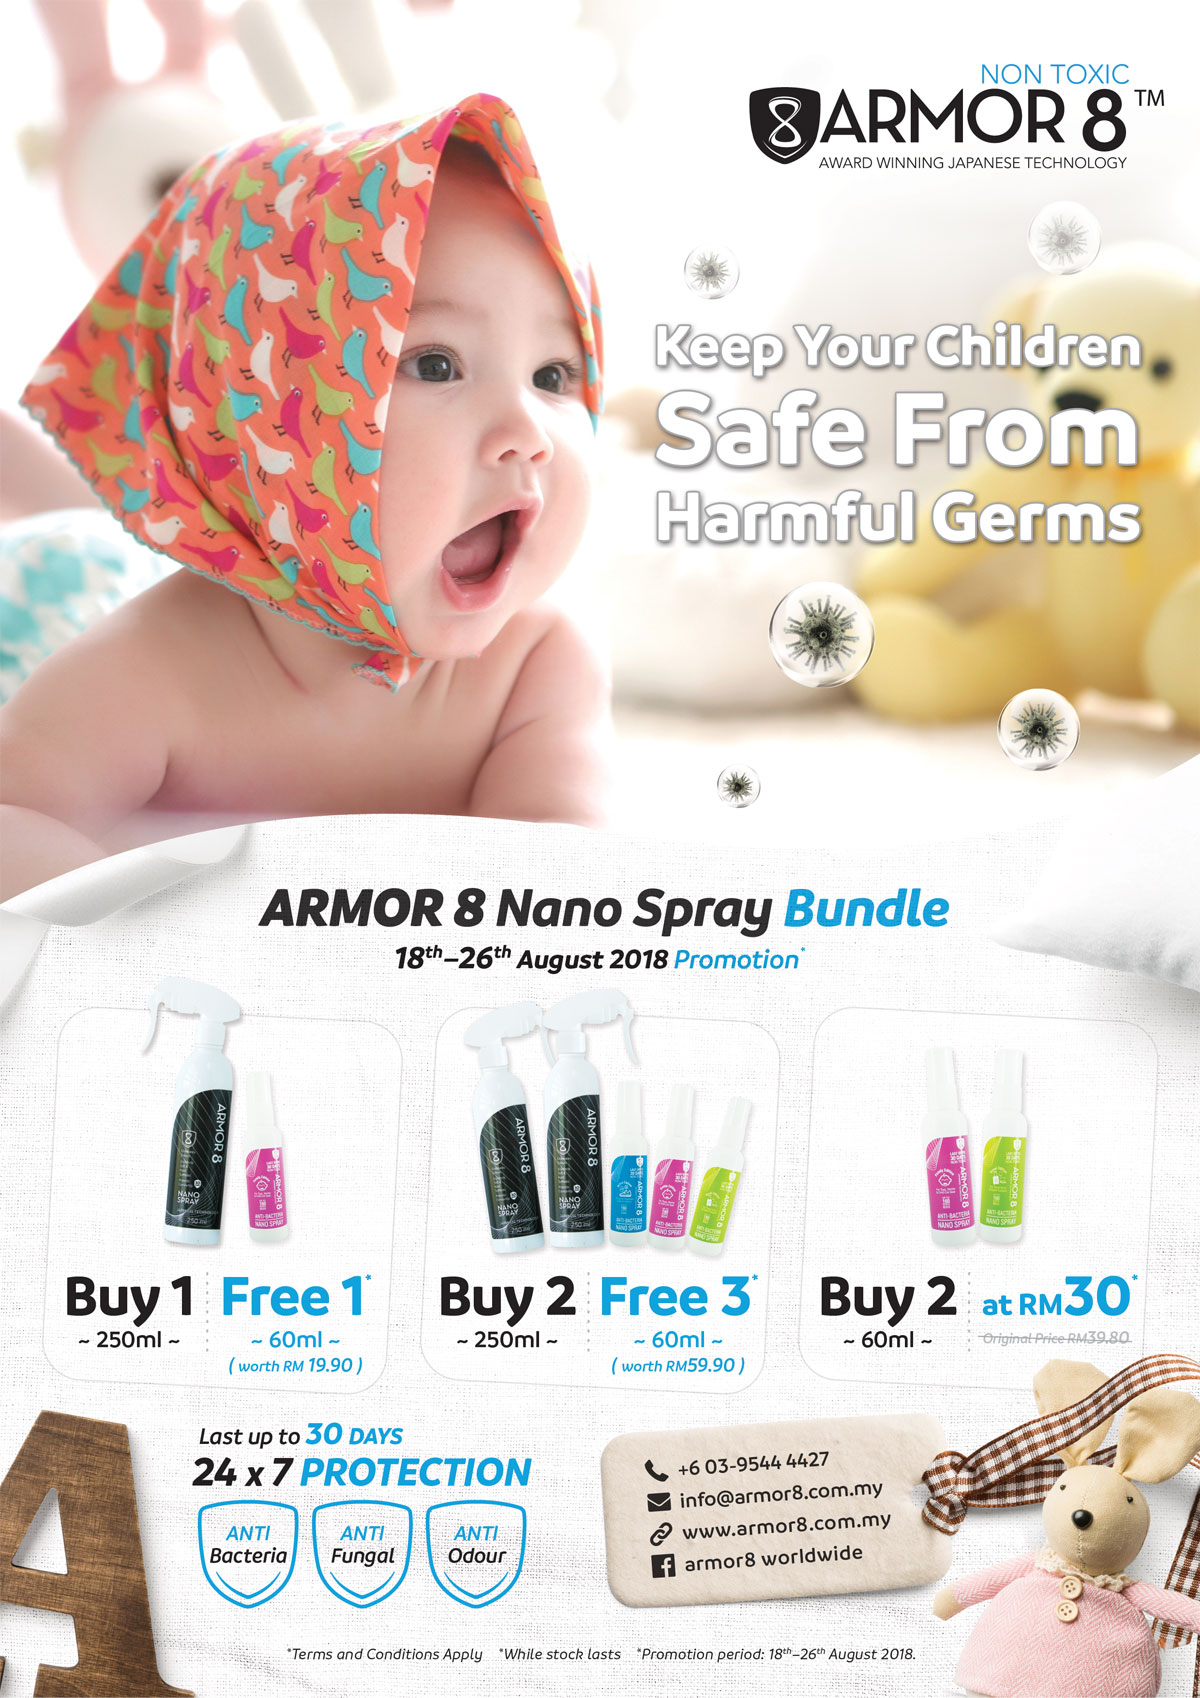 Armor8 Keeps Your Children Safe From Harmful Germs Poster Design 06